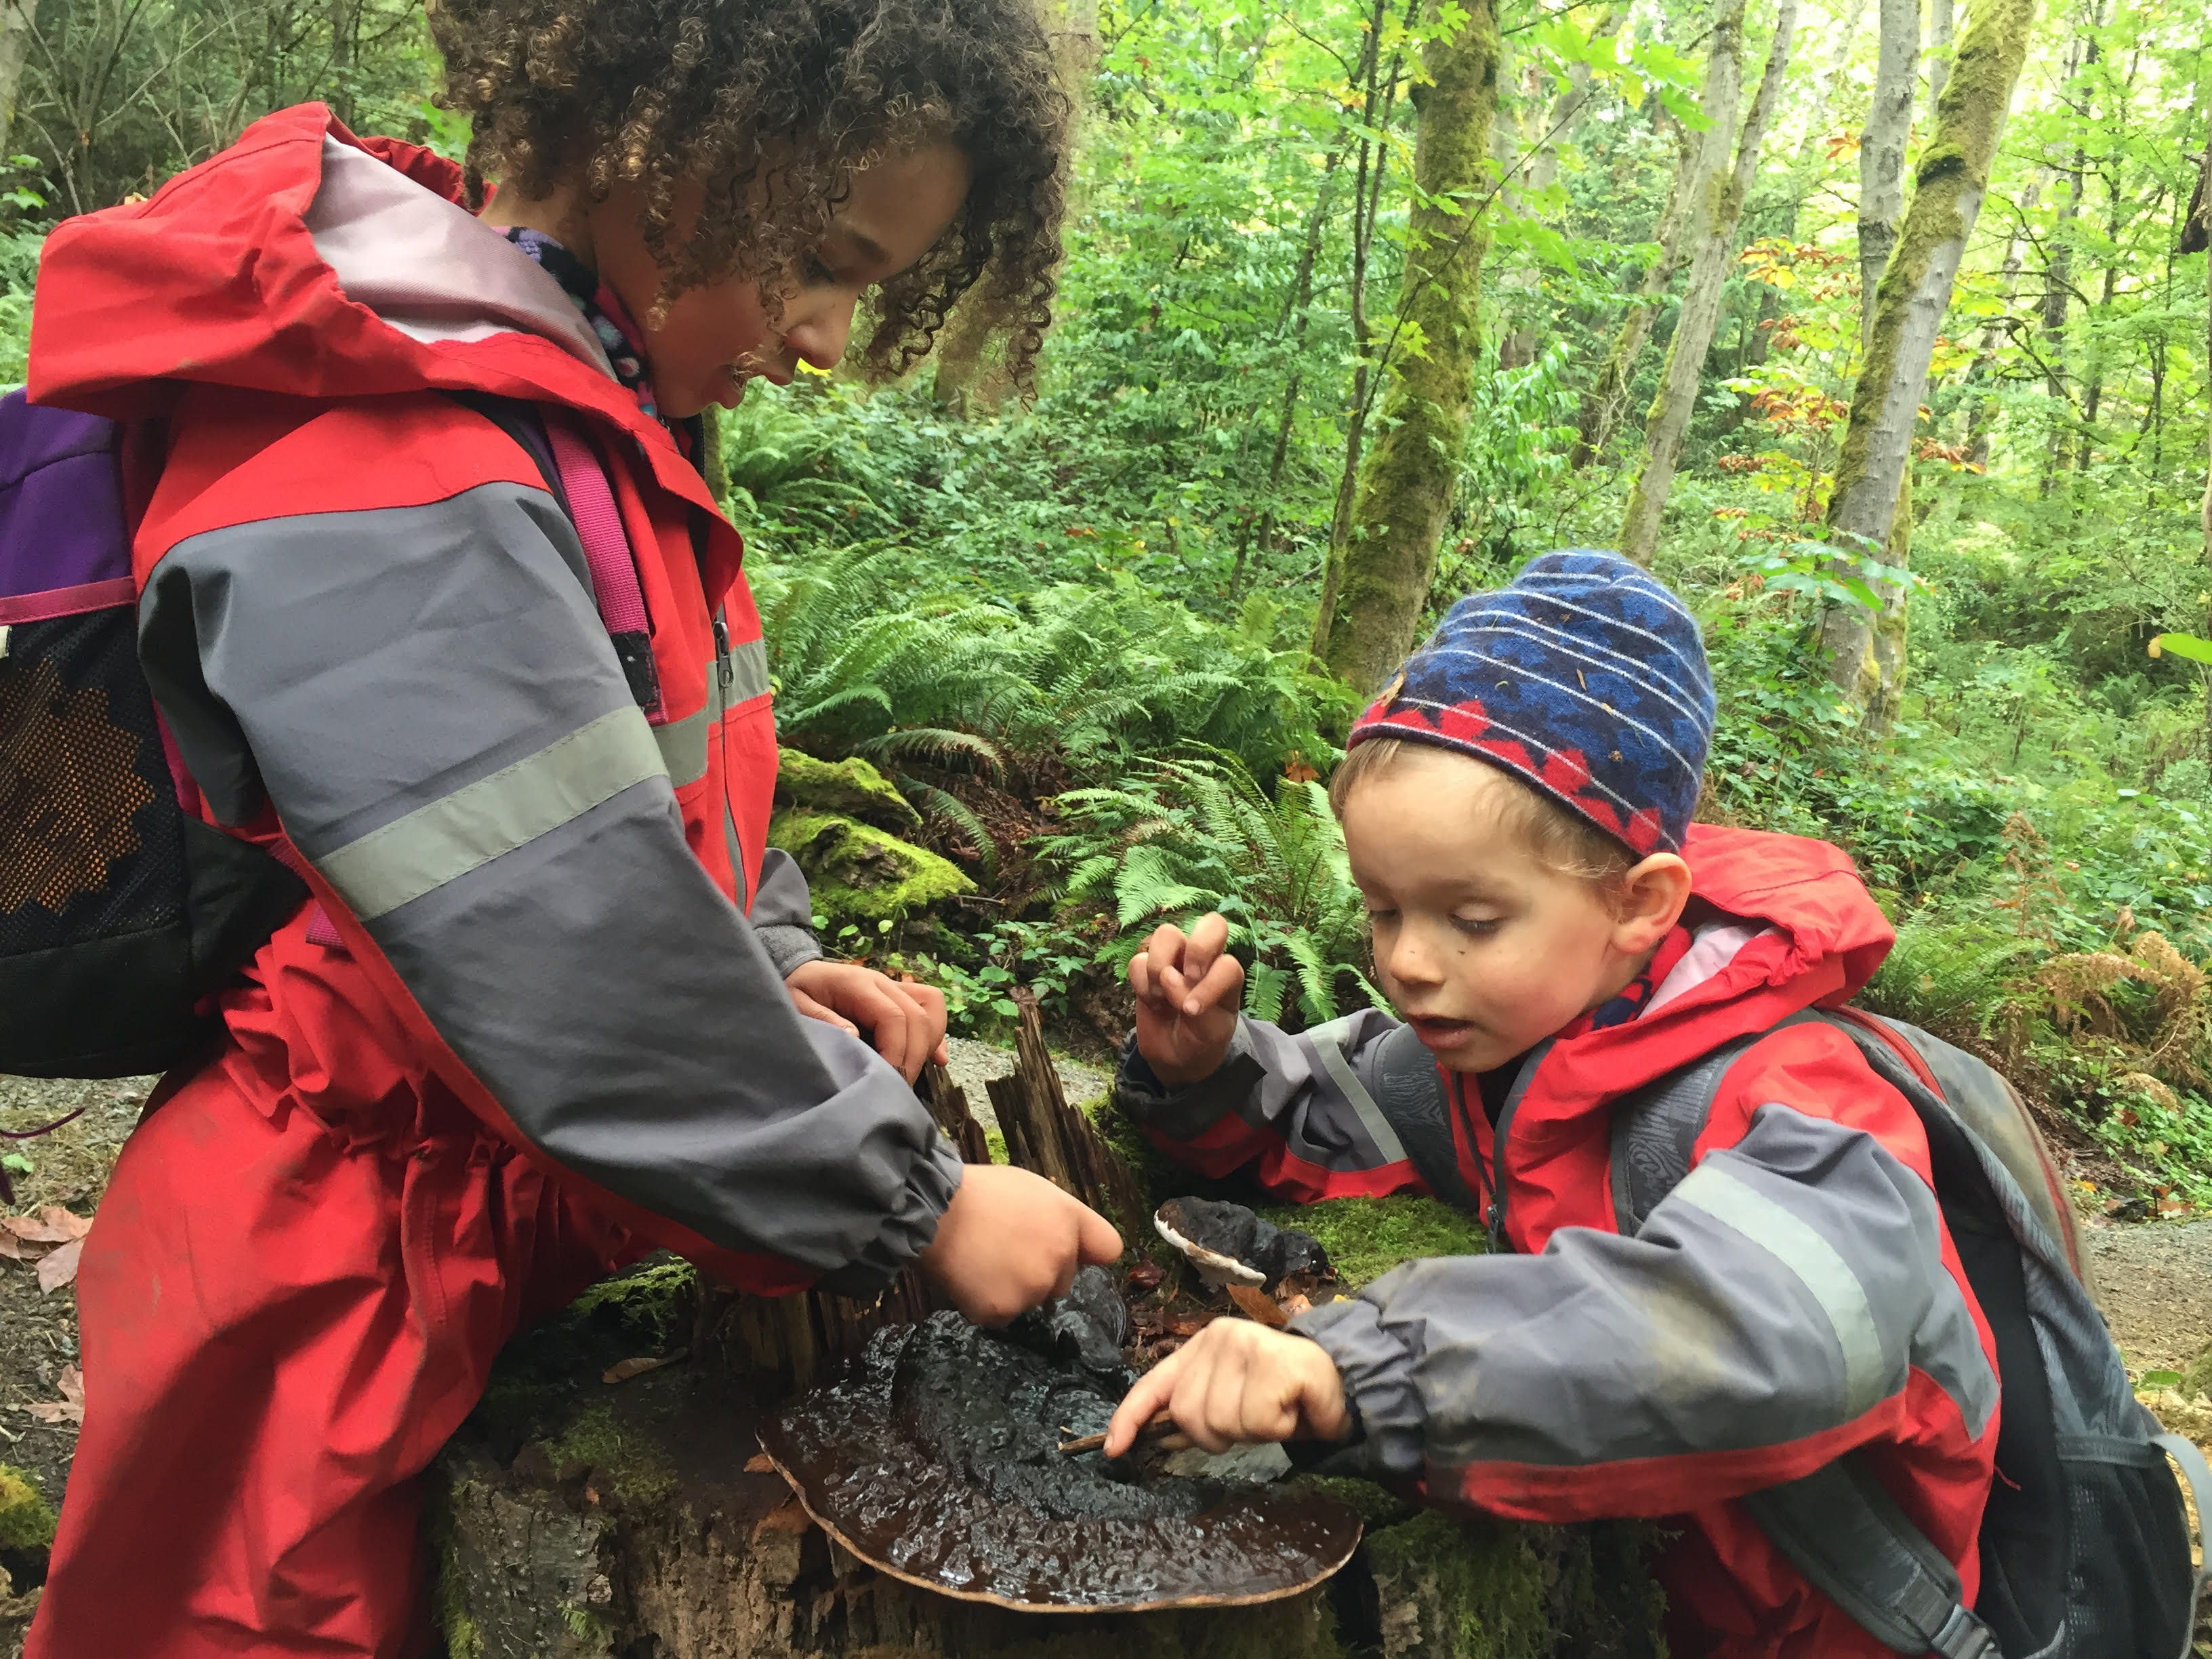 west seattle outdoor preschoolers exploring fungus